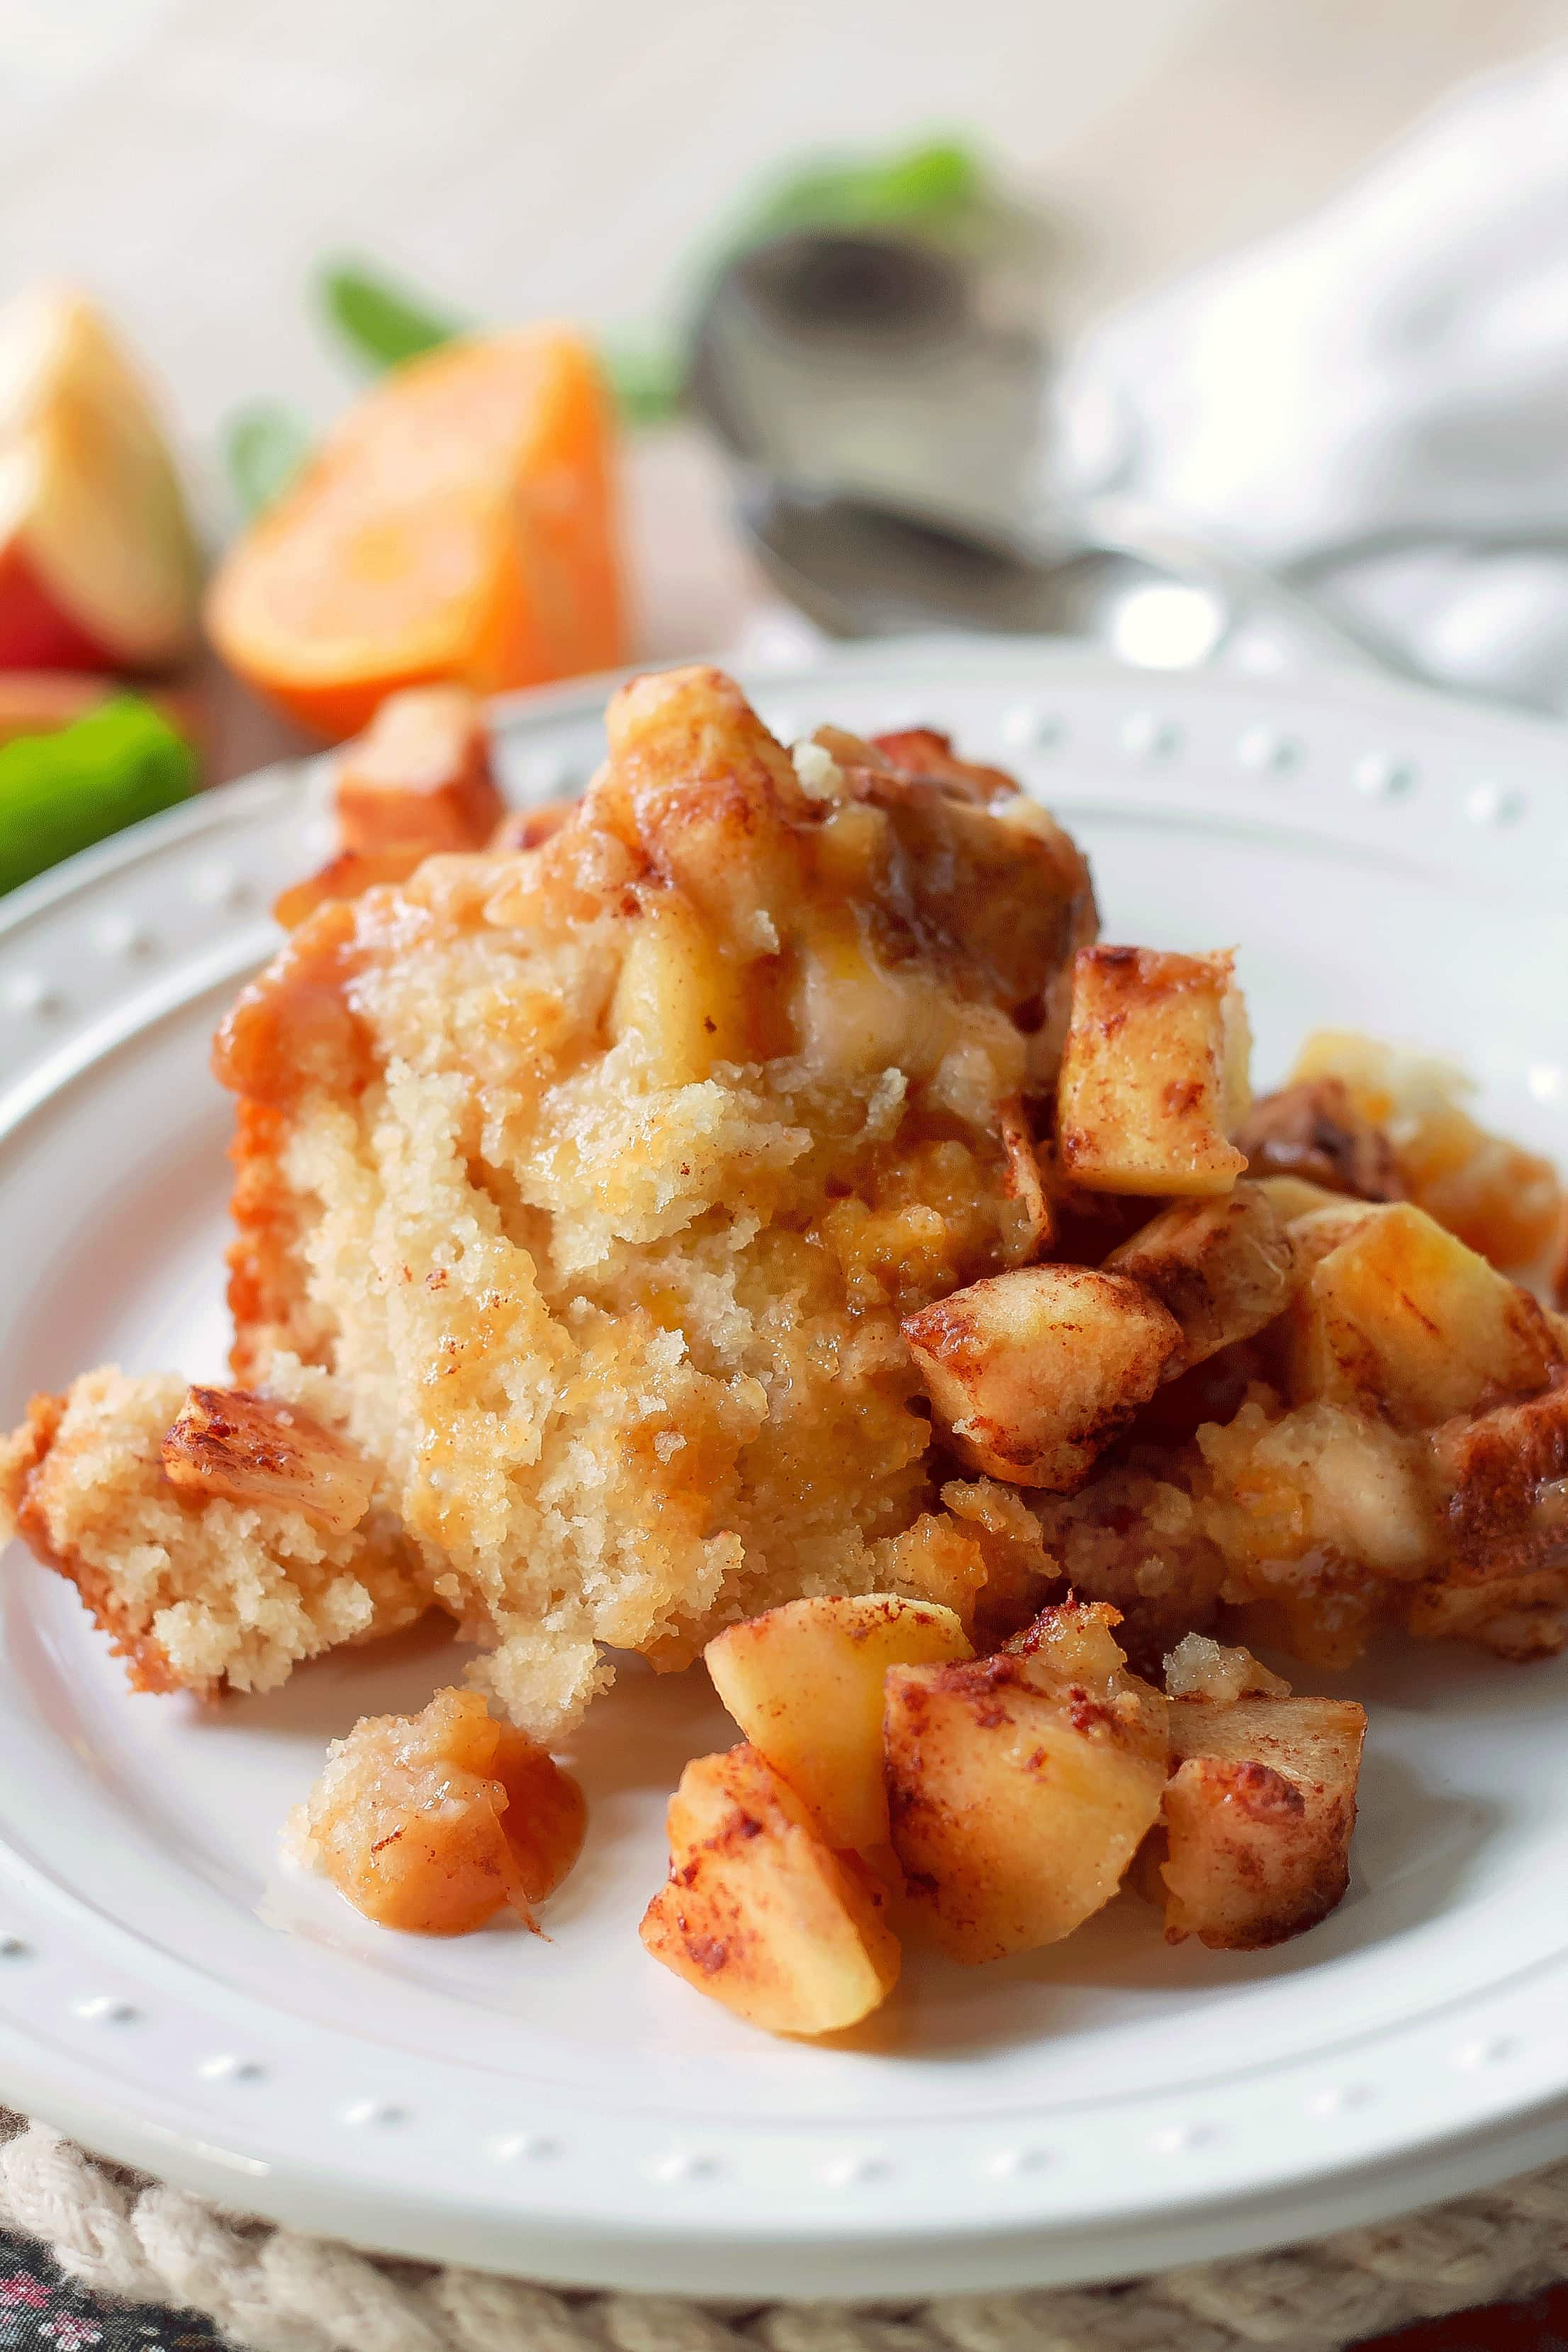 Crock Pot Apple Pudding Cake - Love apple desserts? Get your fall baking on with these 15 delicious and easy apple dessert recipes including the best apple pies, cakes, apple crisp, and more! #applerecipes #appledesserts #baking #fallbaking